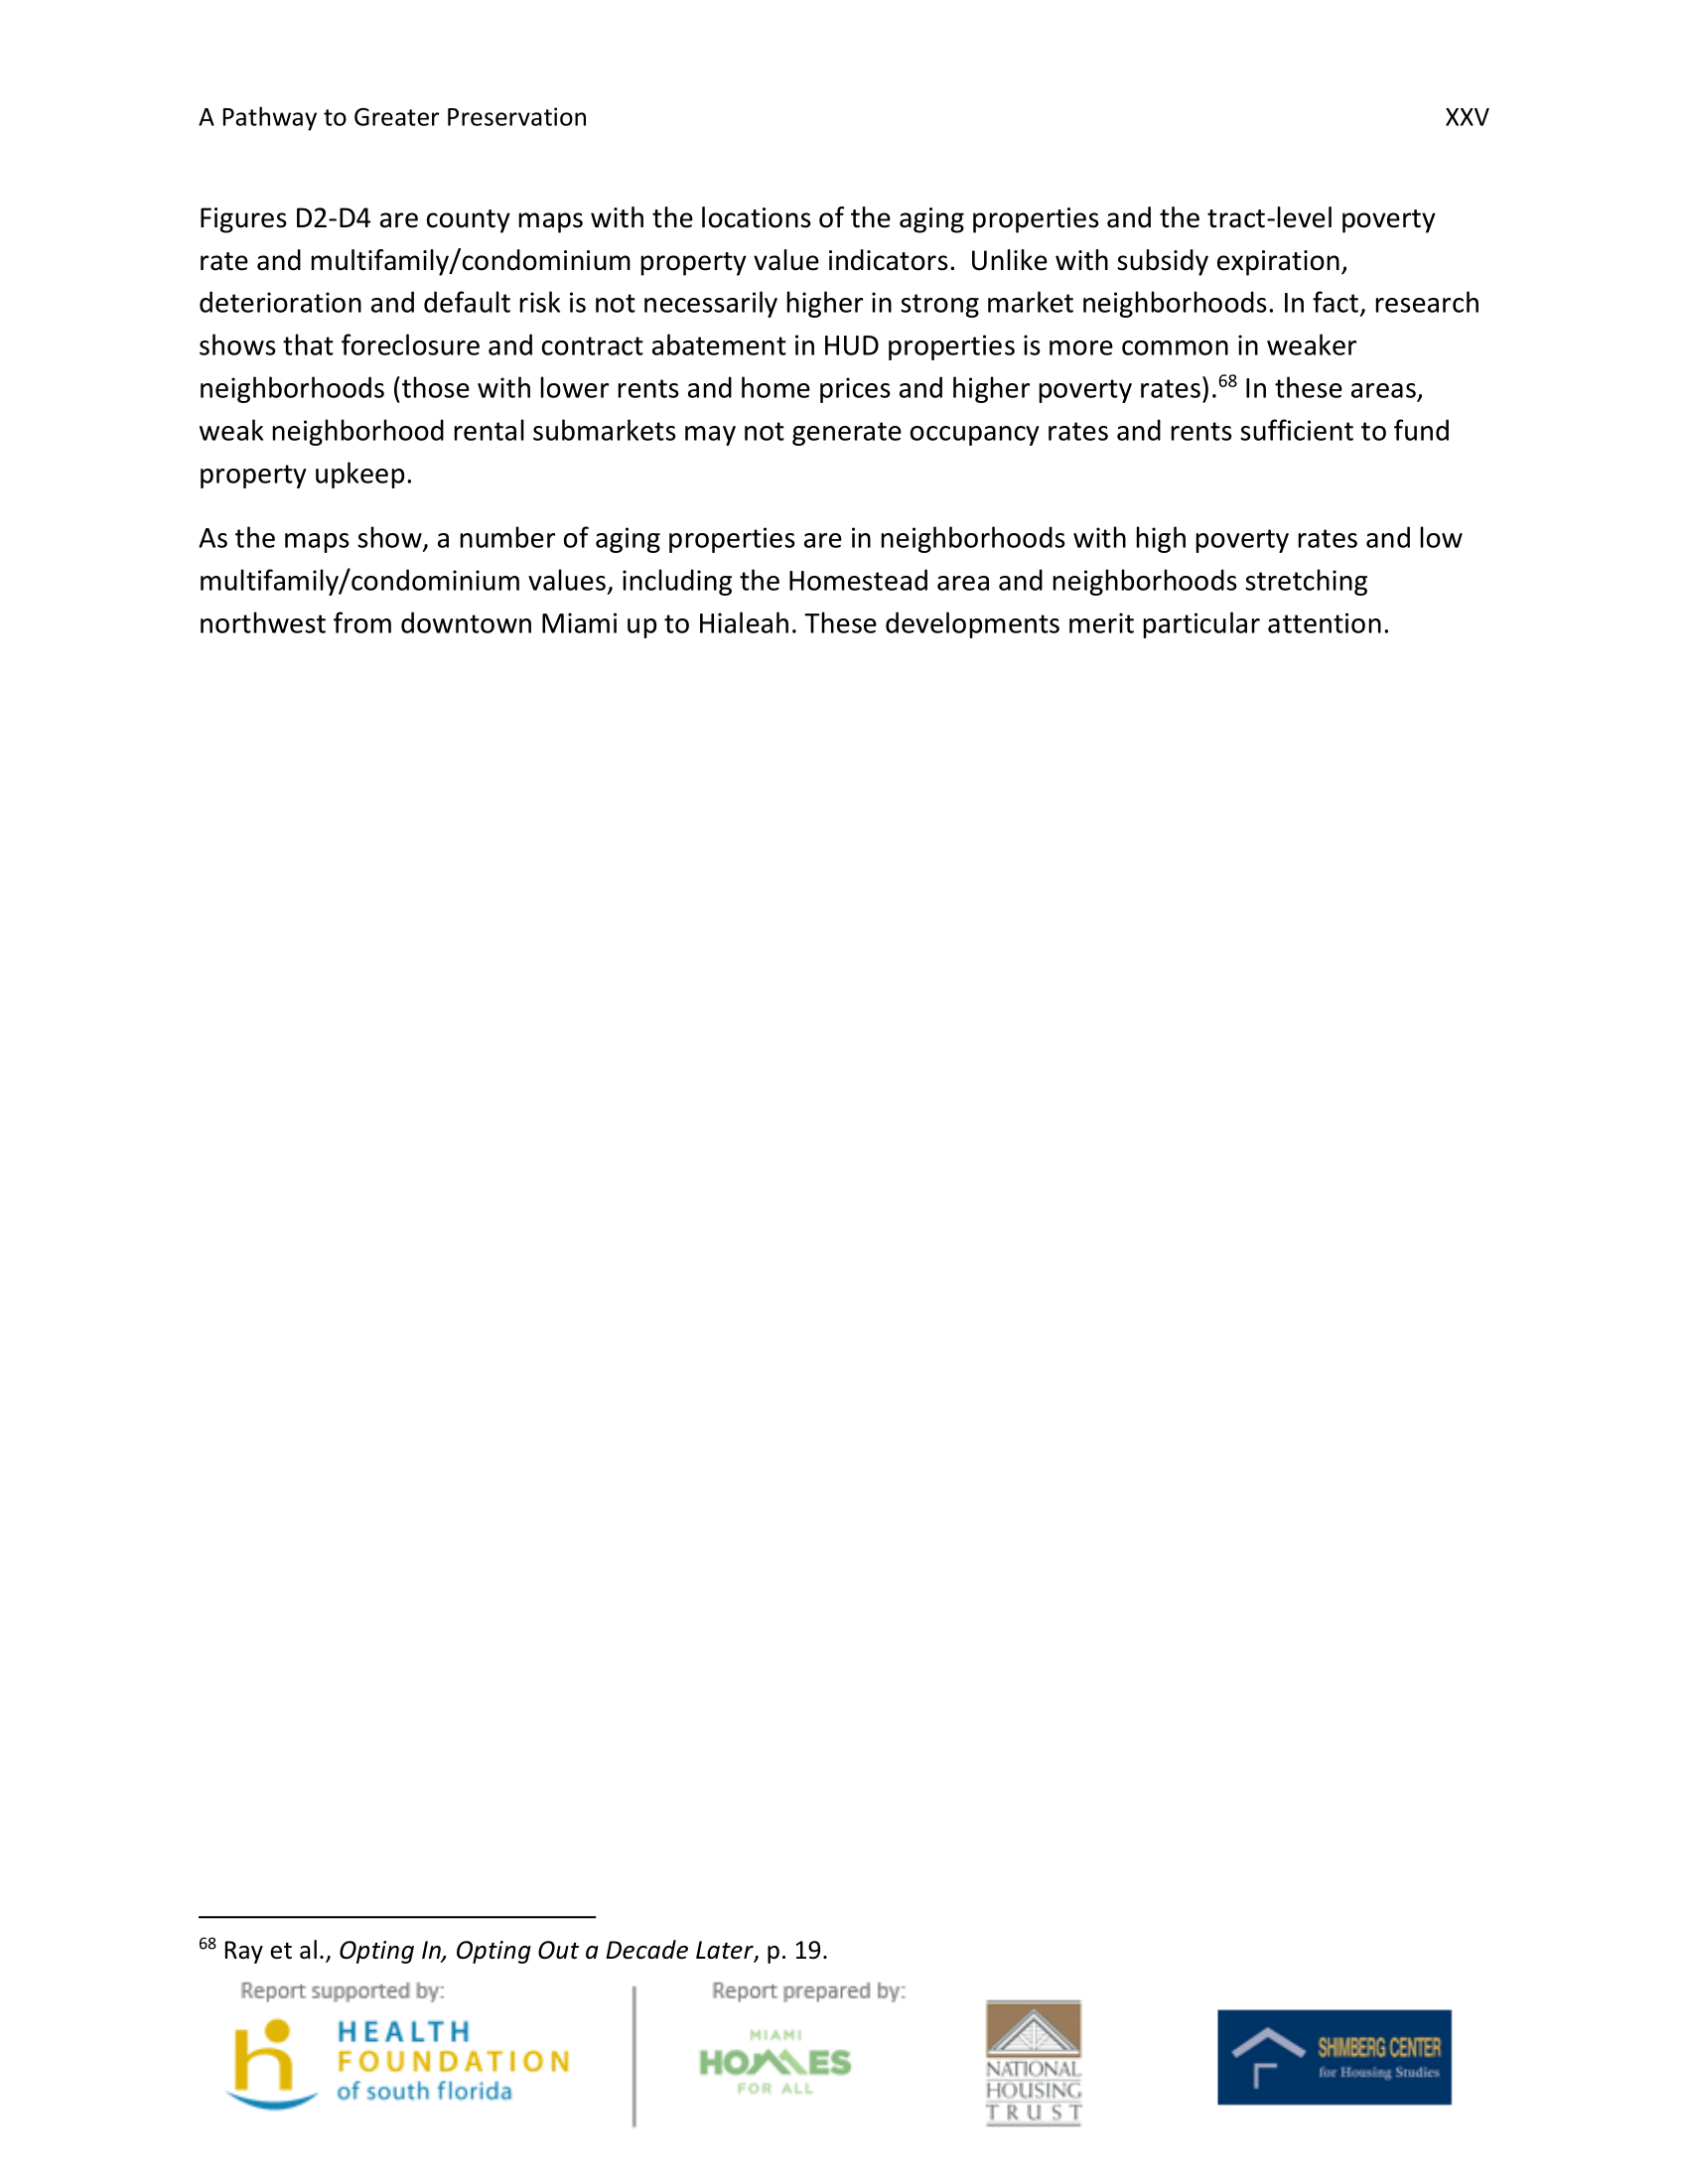 A Pathway to Greater Preservation - February 2018-71.png